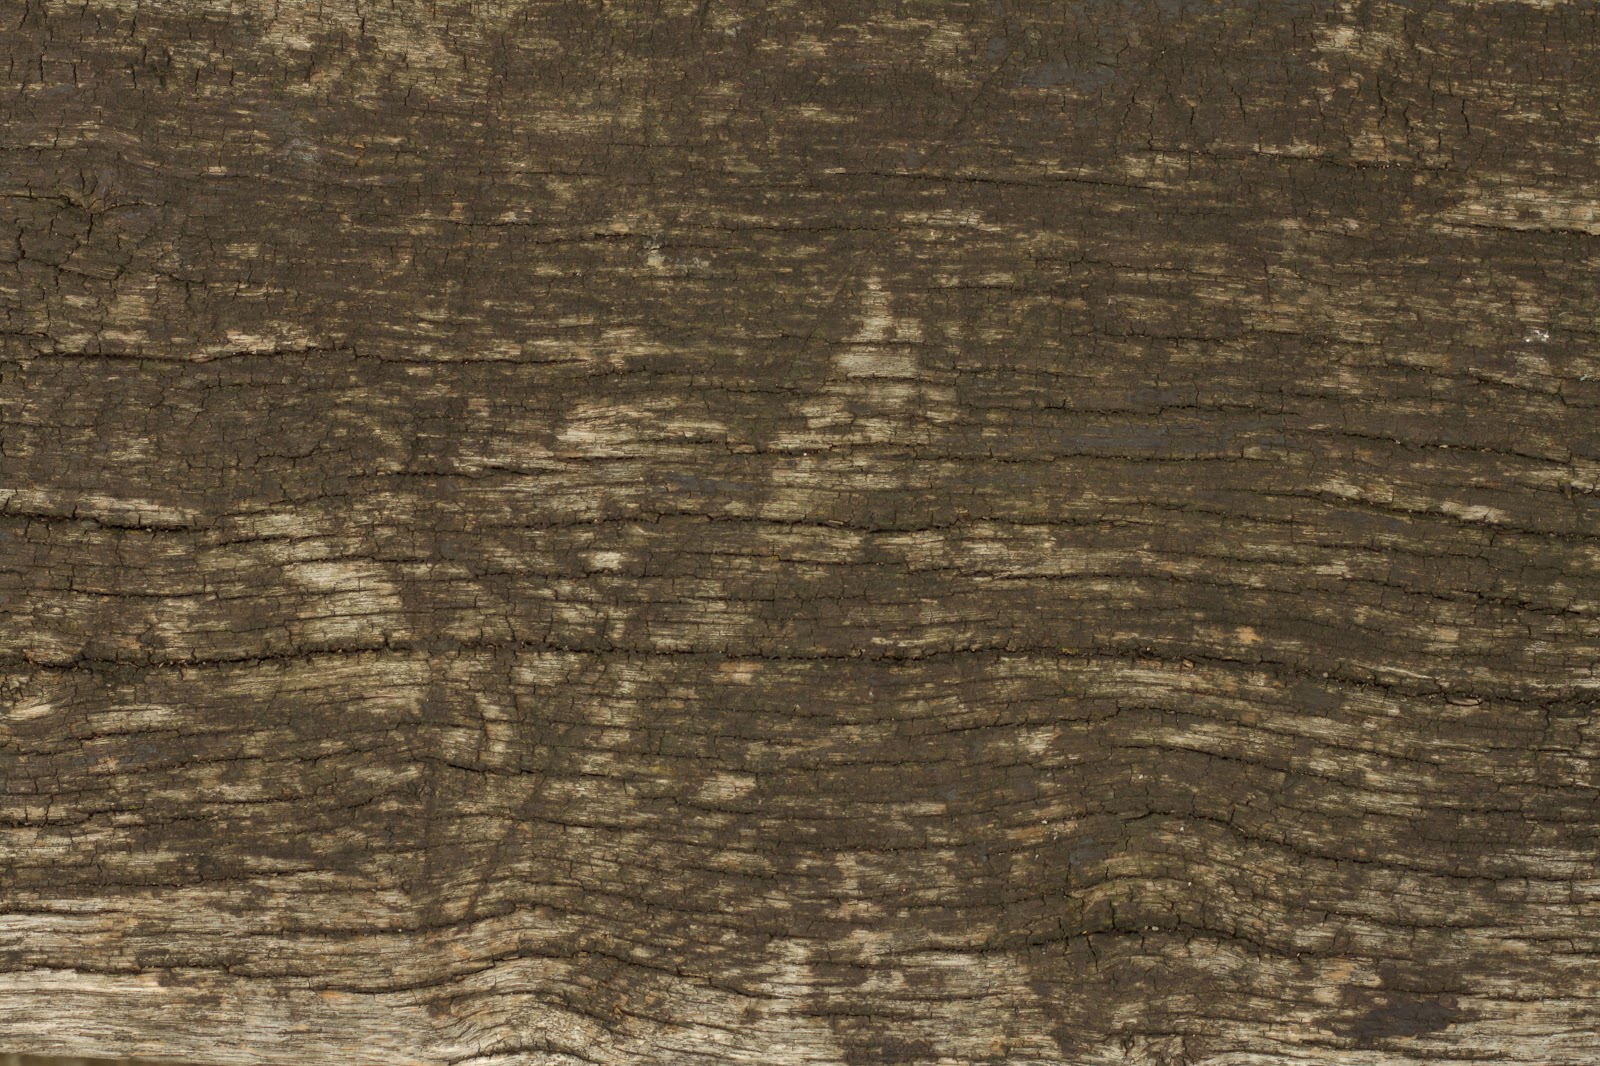 Wood dry cracked bench plank tree bark texture ver 14